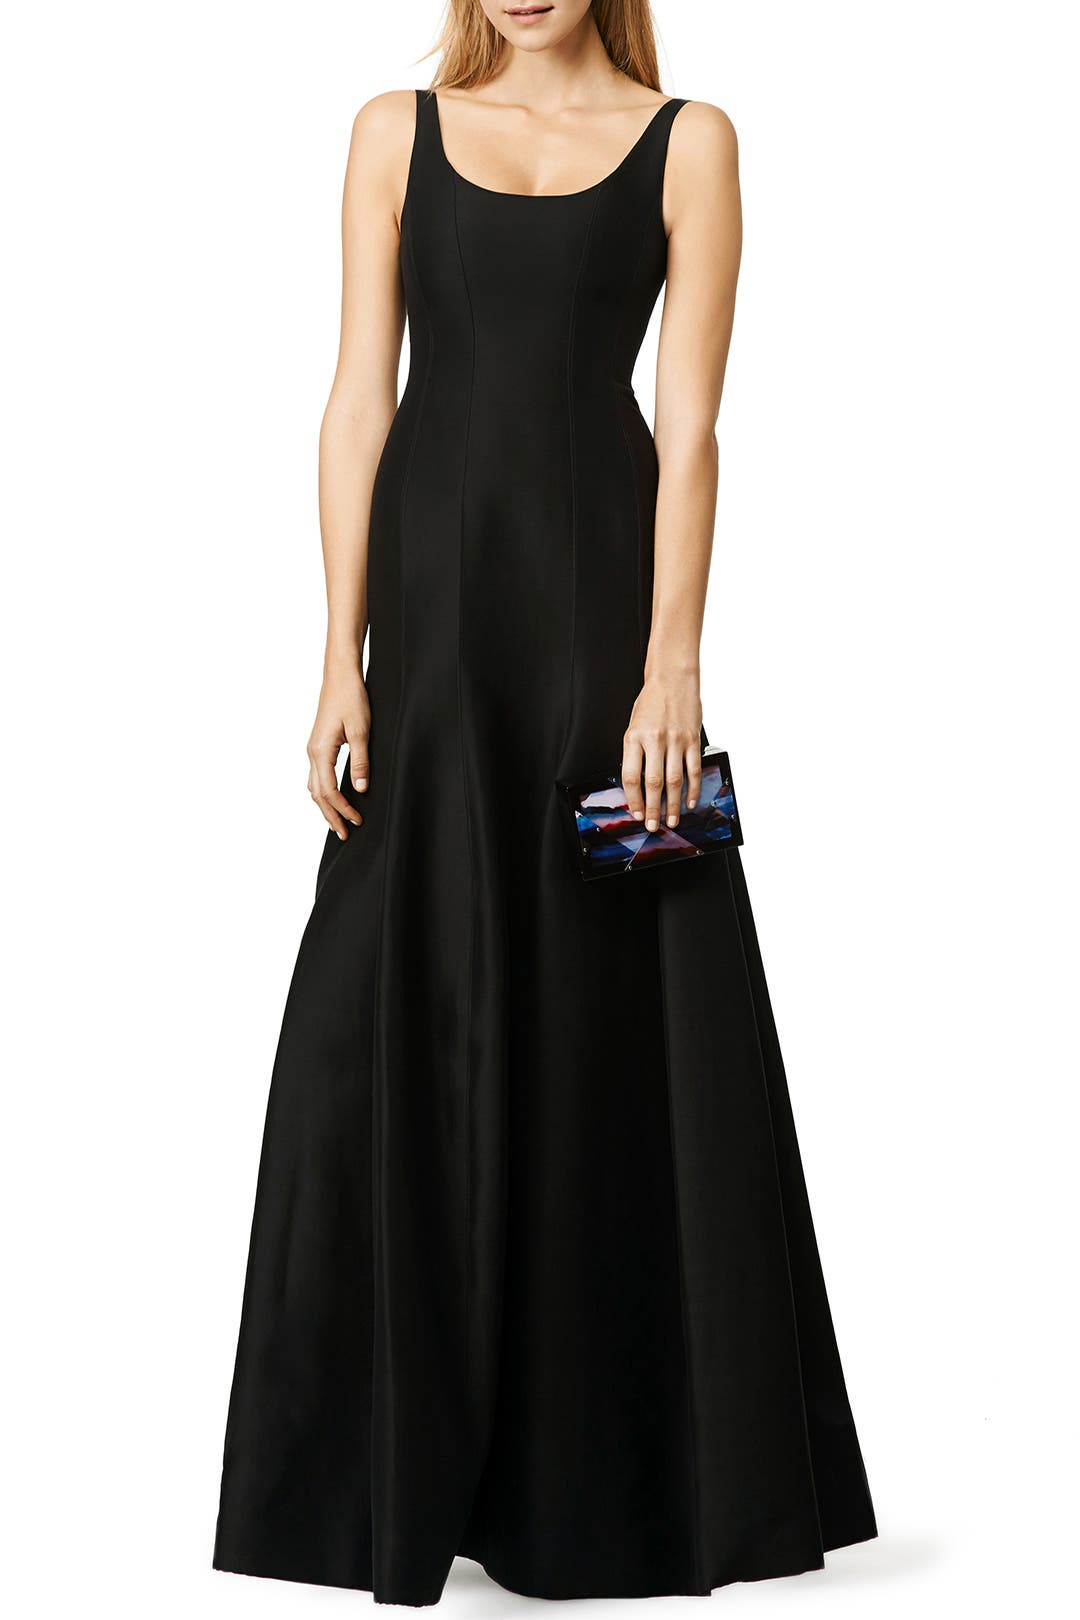 Ursula Dresses 2015 Fall Line Ursula Gown by Halston